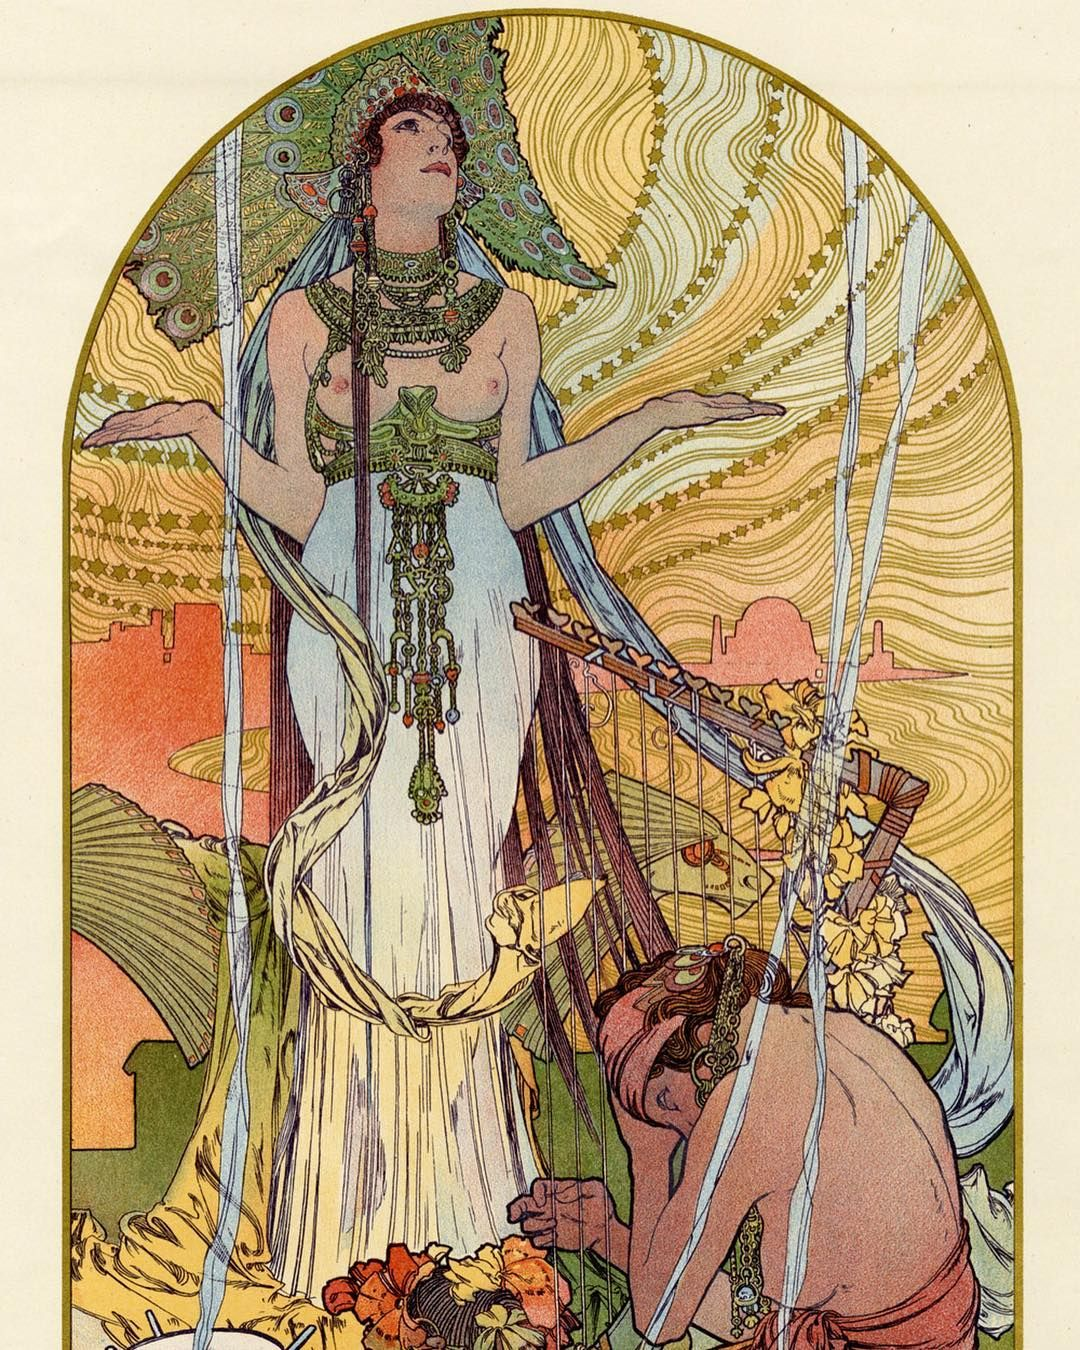 Czech artist Alphonse Mucha was born #onthisday in 1860. His colourful Art Nouveau works from around the turn of the 20th century could be seen on posters, advertisements and interior designs. This style is characterised by intricate patterns, floral motifs and flowing organic shapes. Mucha's artwork often portrayed women, and expressed the variety of roles women took in 'belle époque' society – from those rejecting old conventions to those on the fringes of society. This evocative 1897…